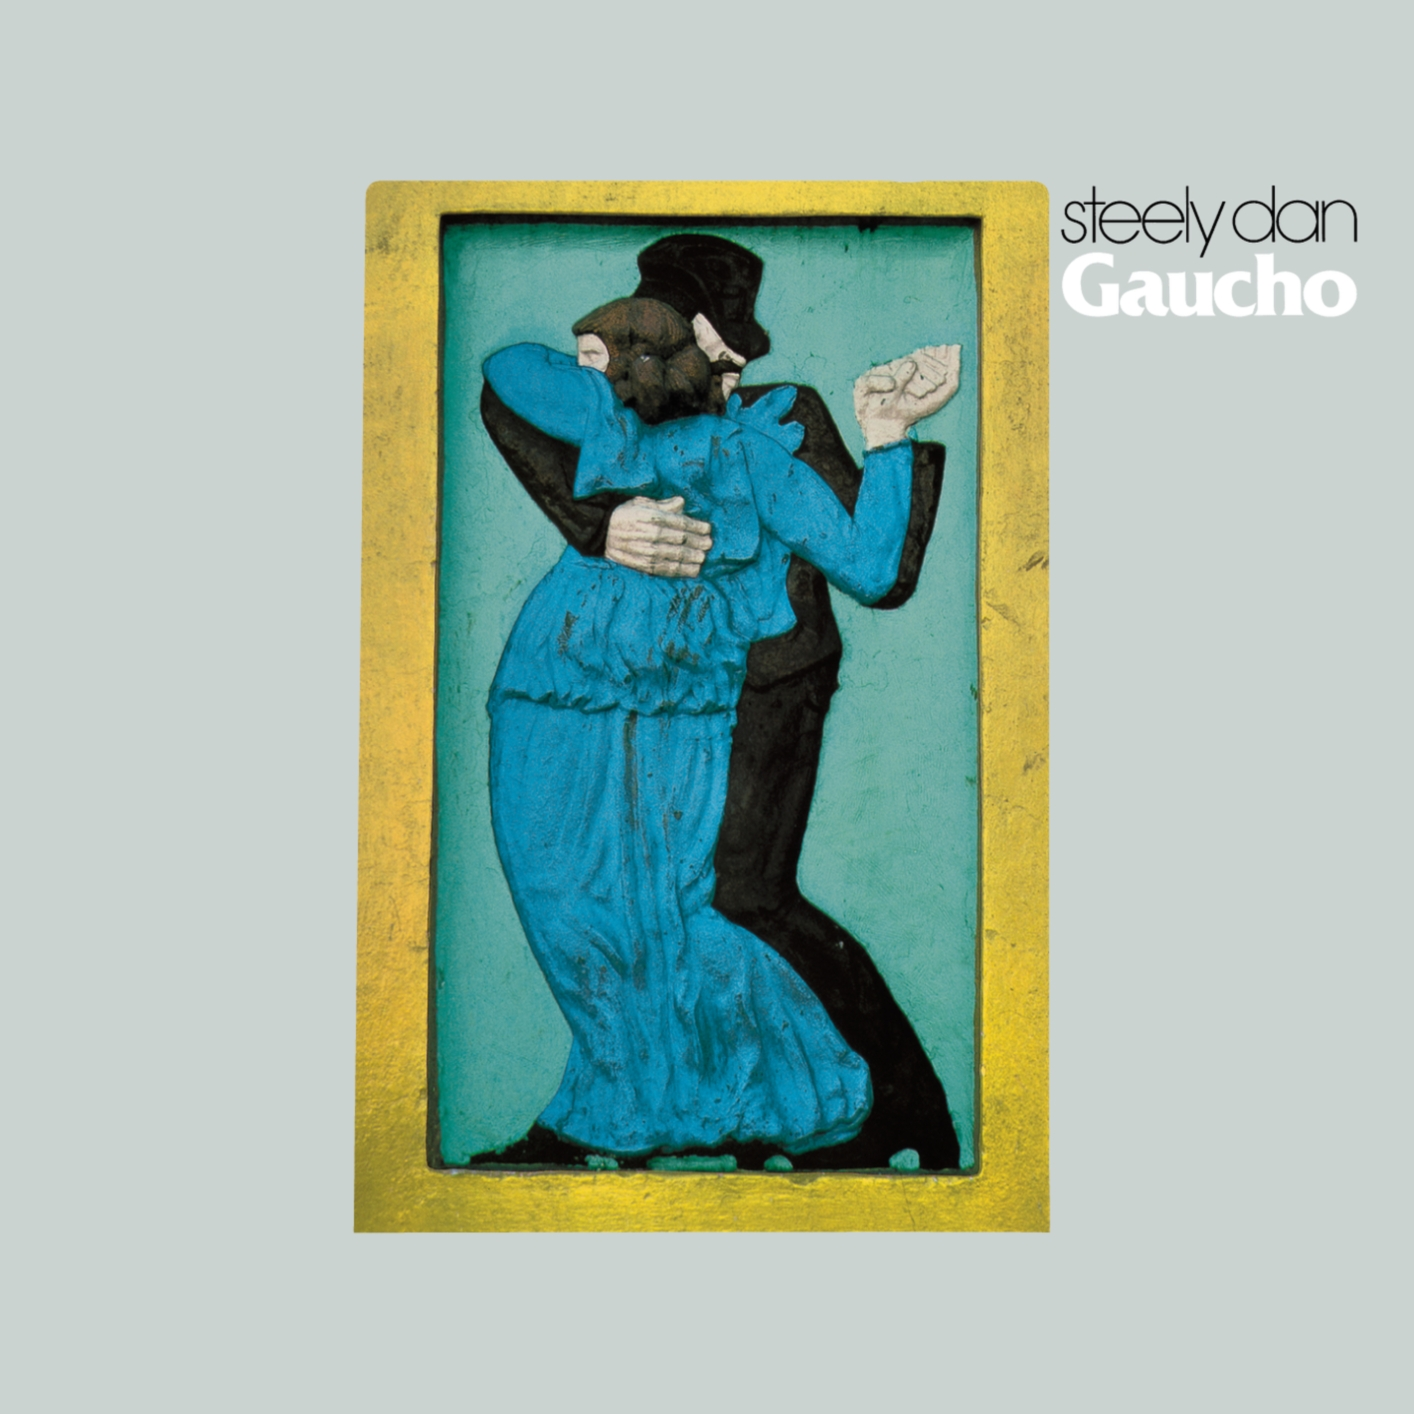 Steely dan gaucho classic rock review steely dan gaucho 1980 malvernweather Choice Image